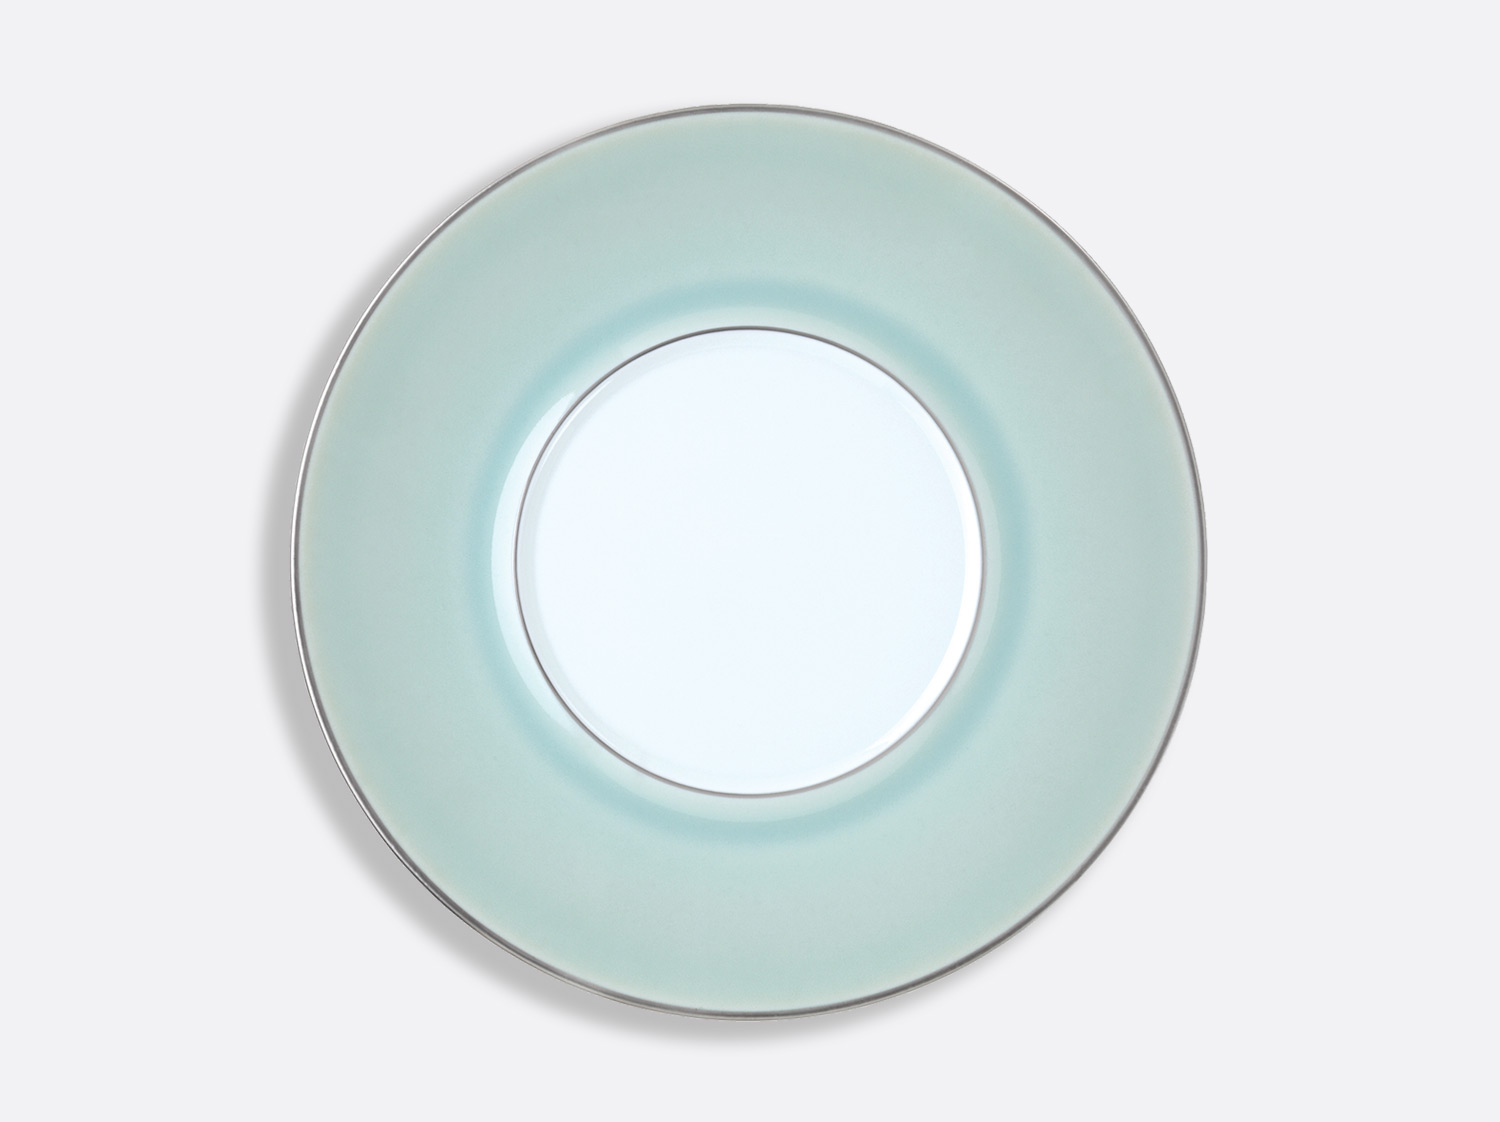 Assiette Shogun Celadon Platine 29,5 cm en porcelaine de la collection Celsius Celadon Platine Bernardaud